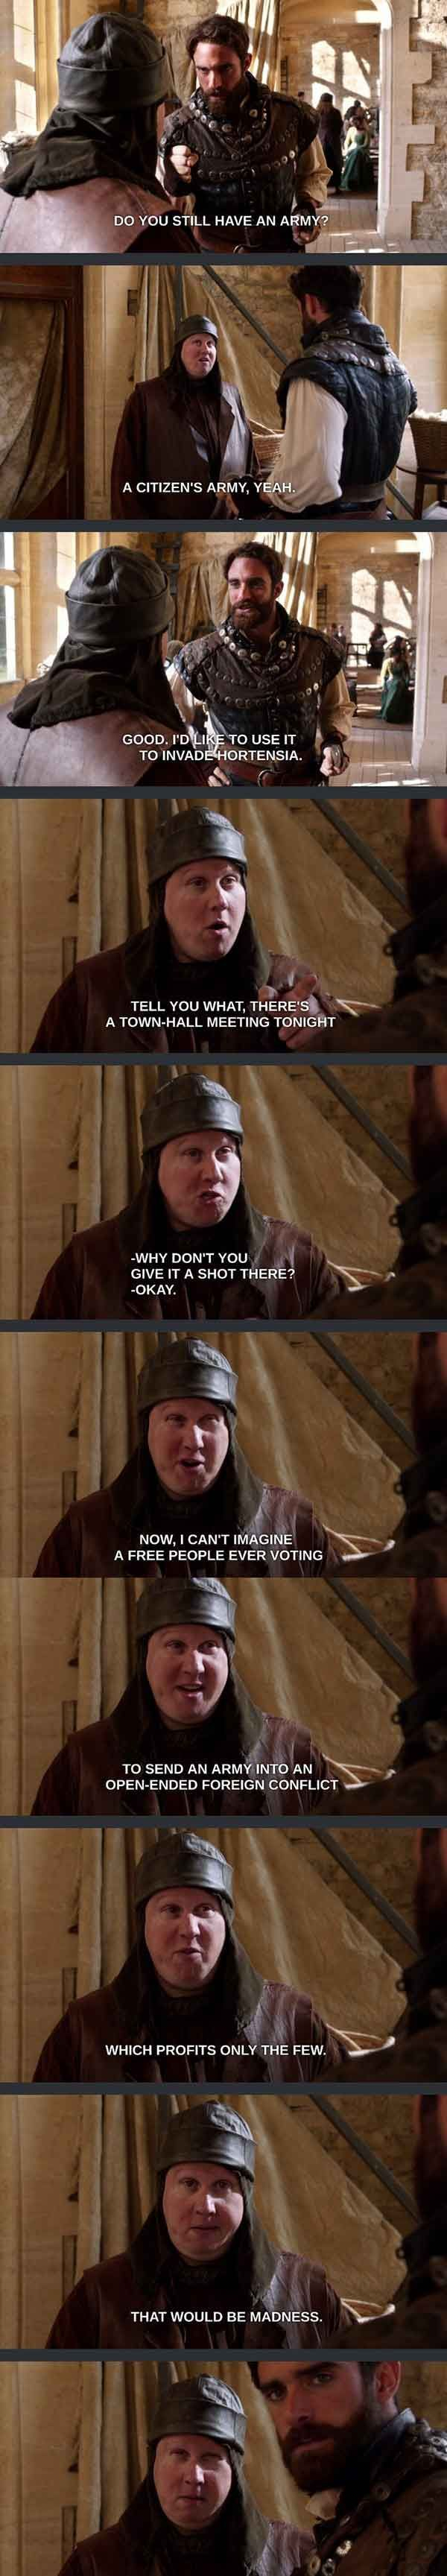 Favorite scene from Galavant